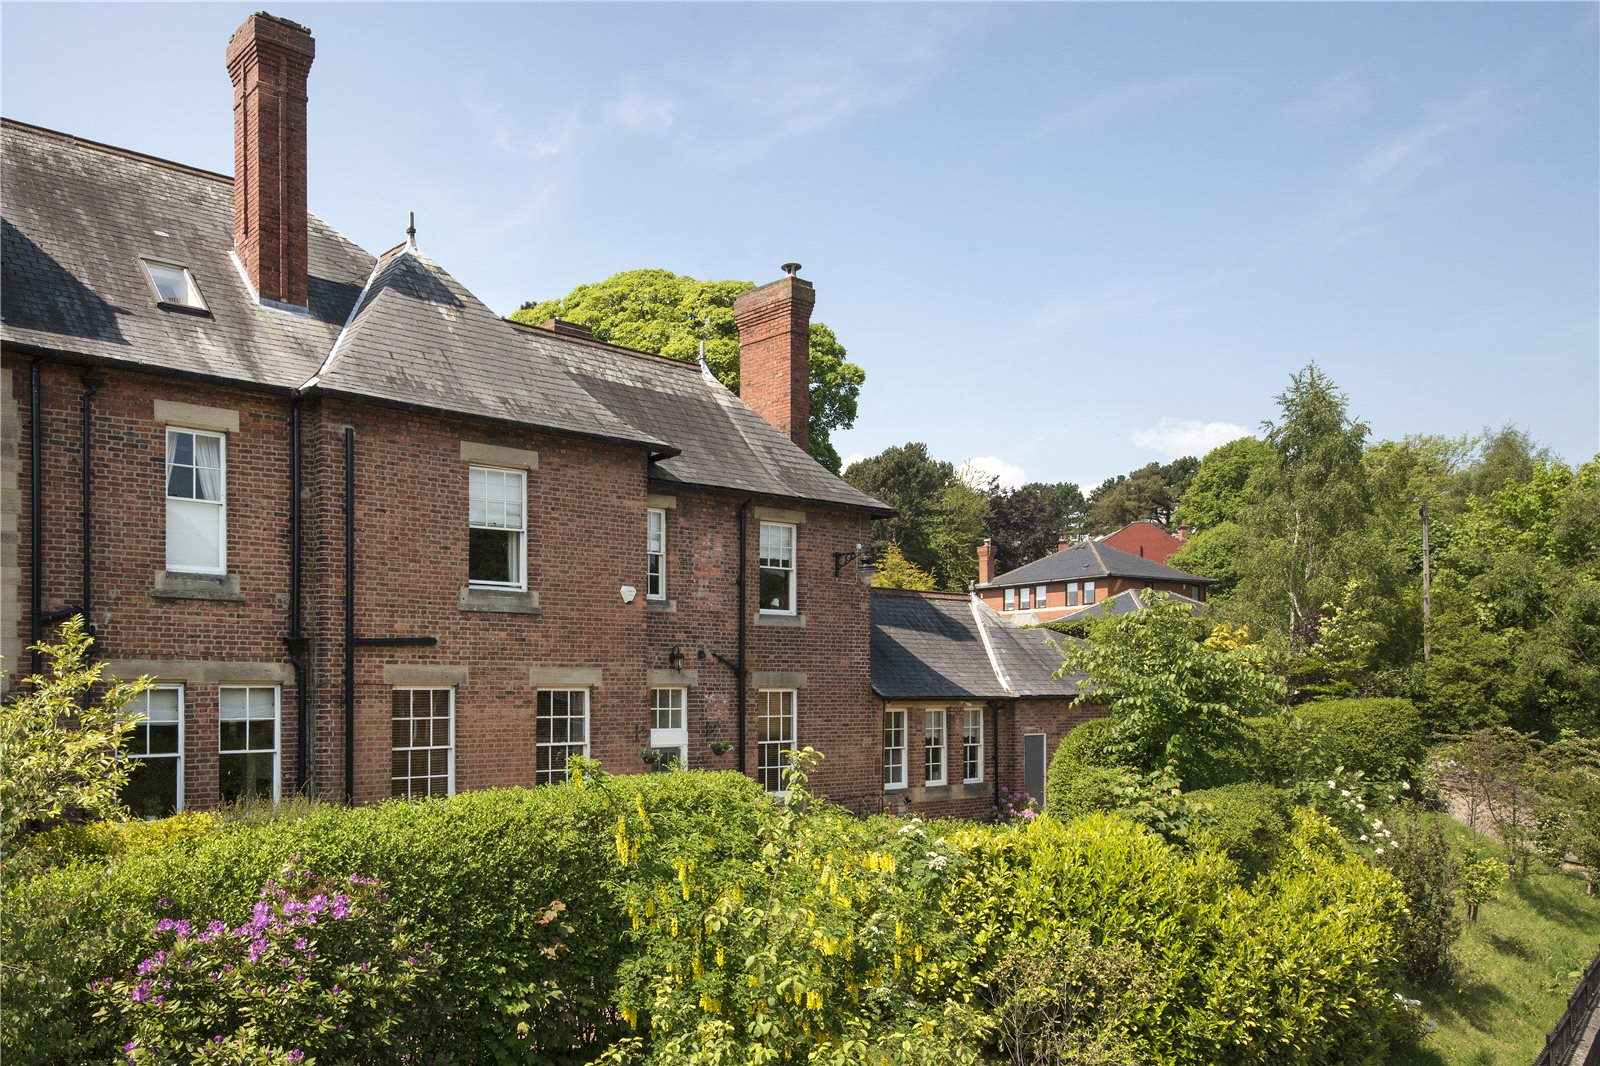 Single Family Home for Sale at Bullers Green, Morpeth, Northumberland, NE61 Morpeth, England